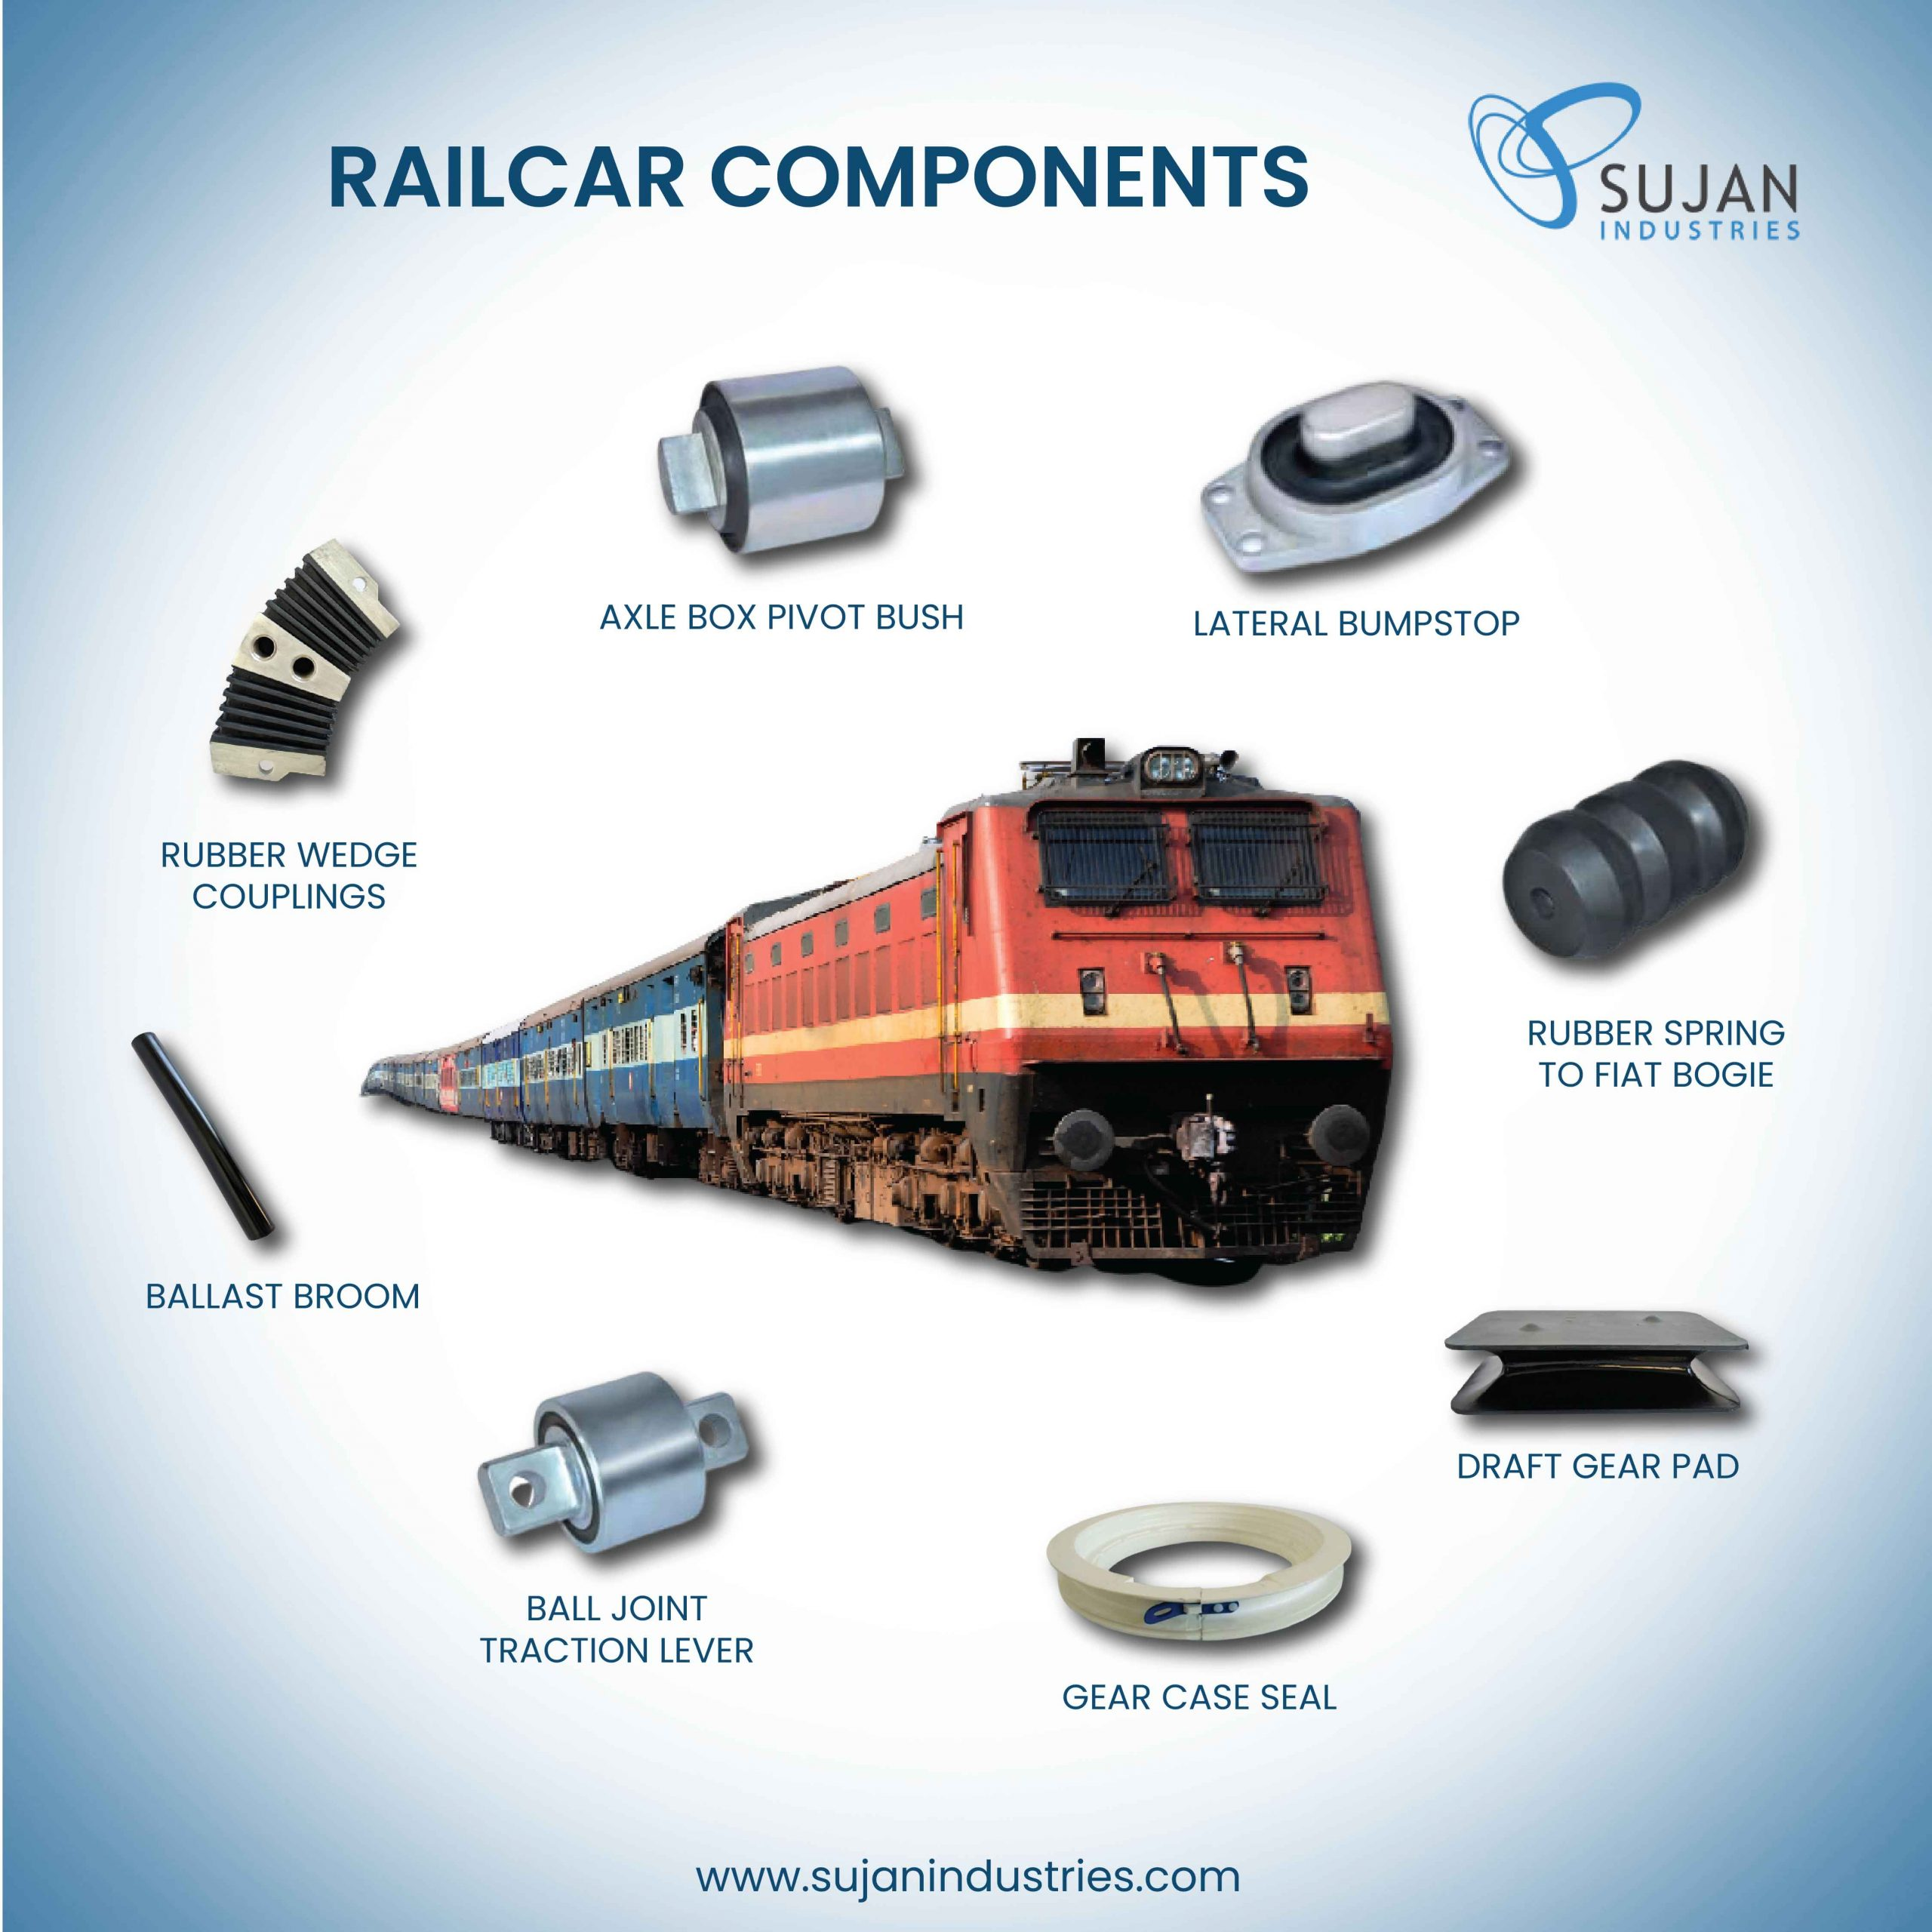 Overview of Railcar Components